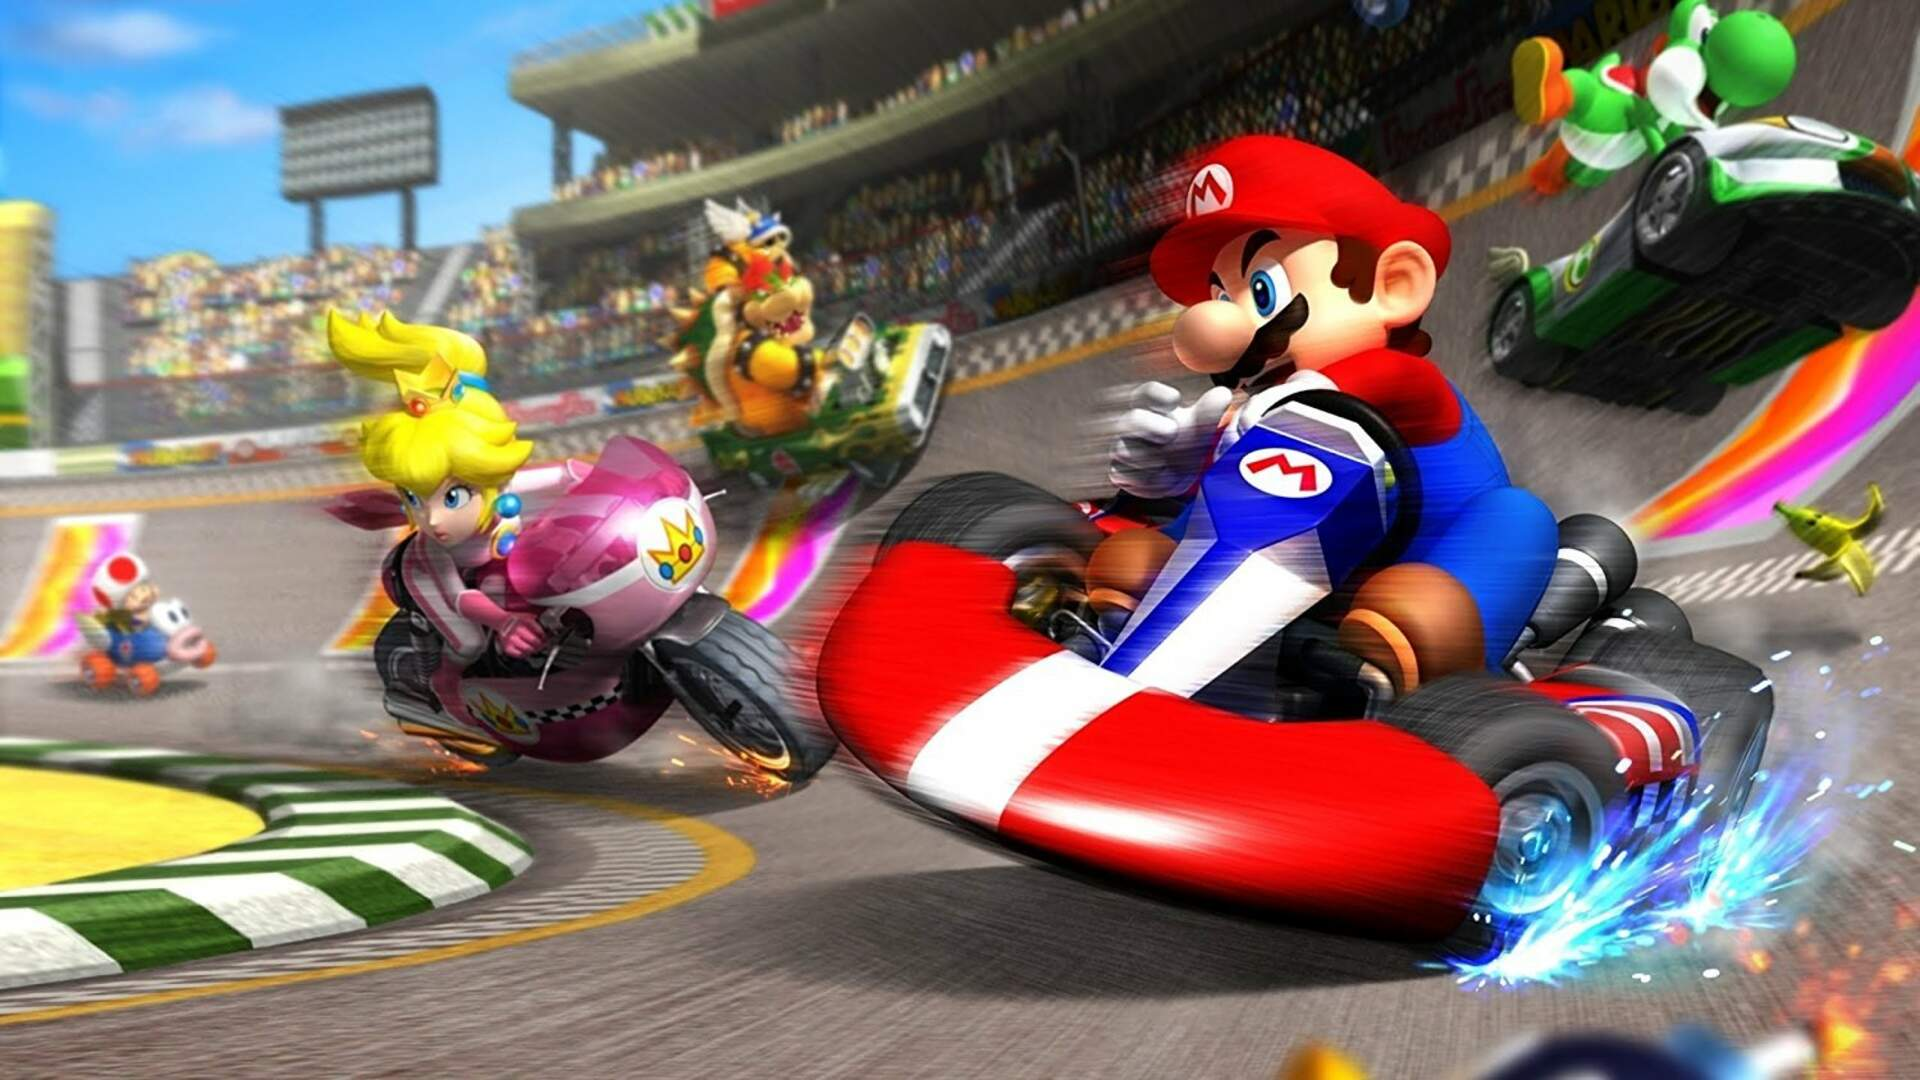 Mario Kart Tour Release Date - Platforms, Price, Track Locations - Everything We Know